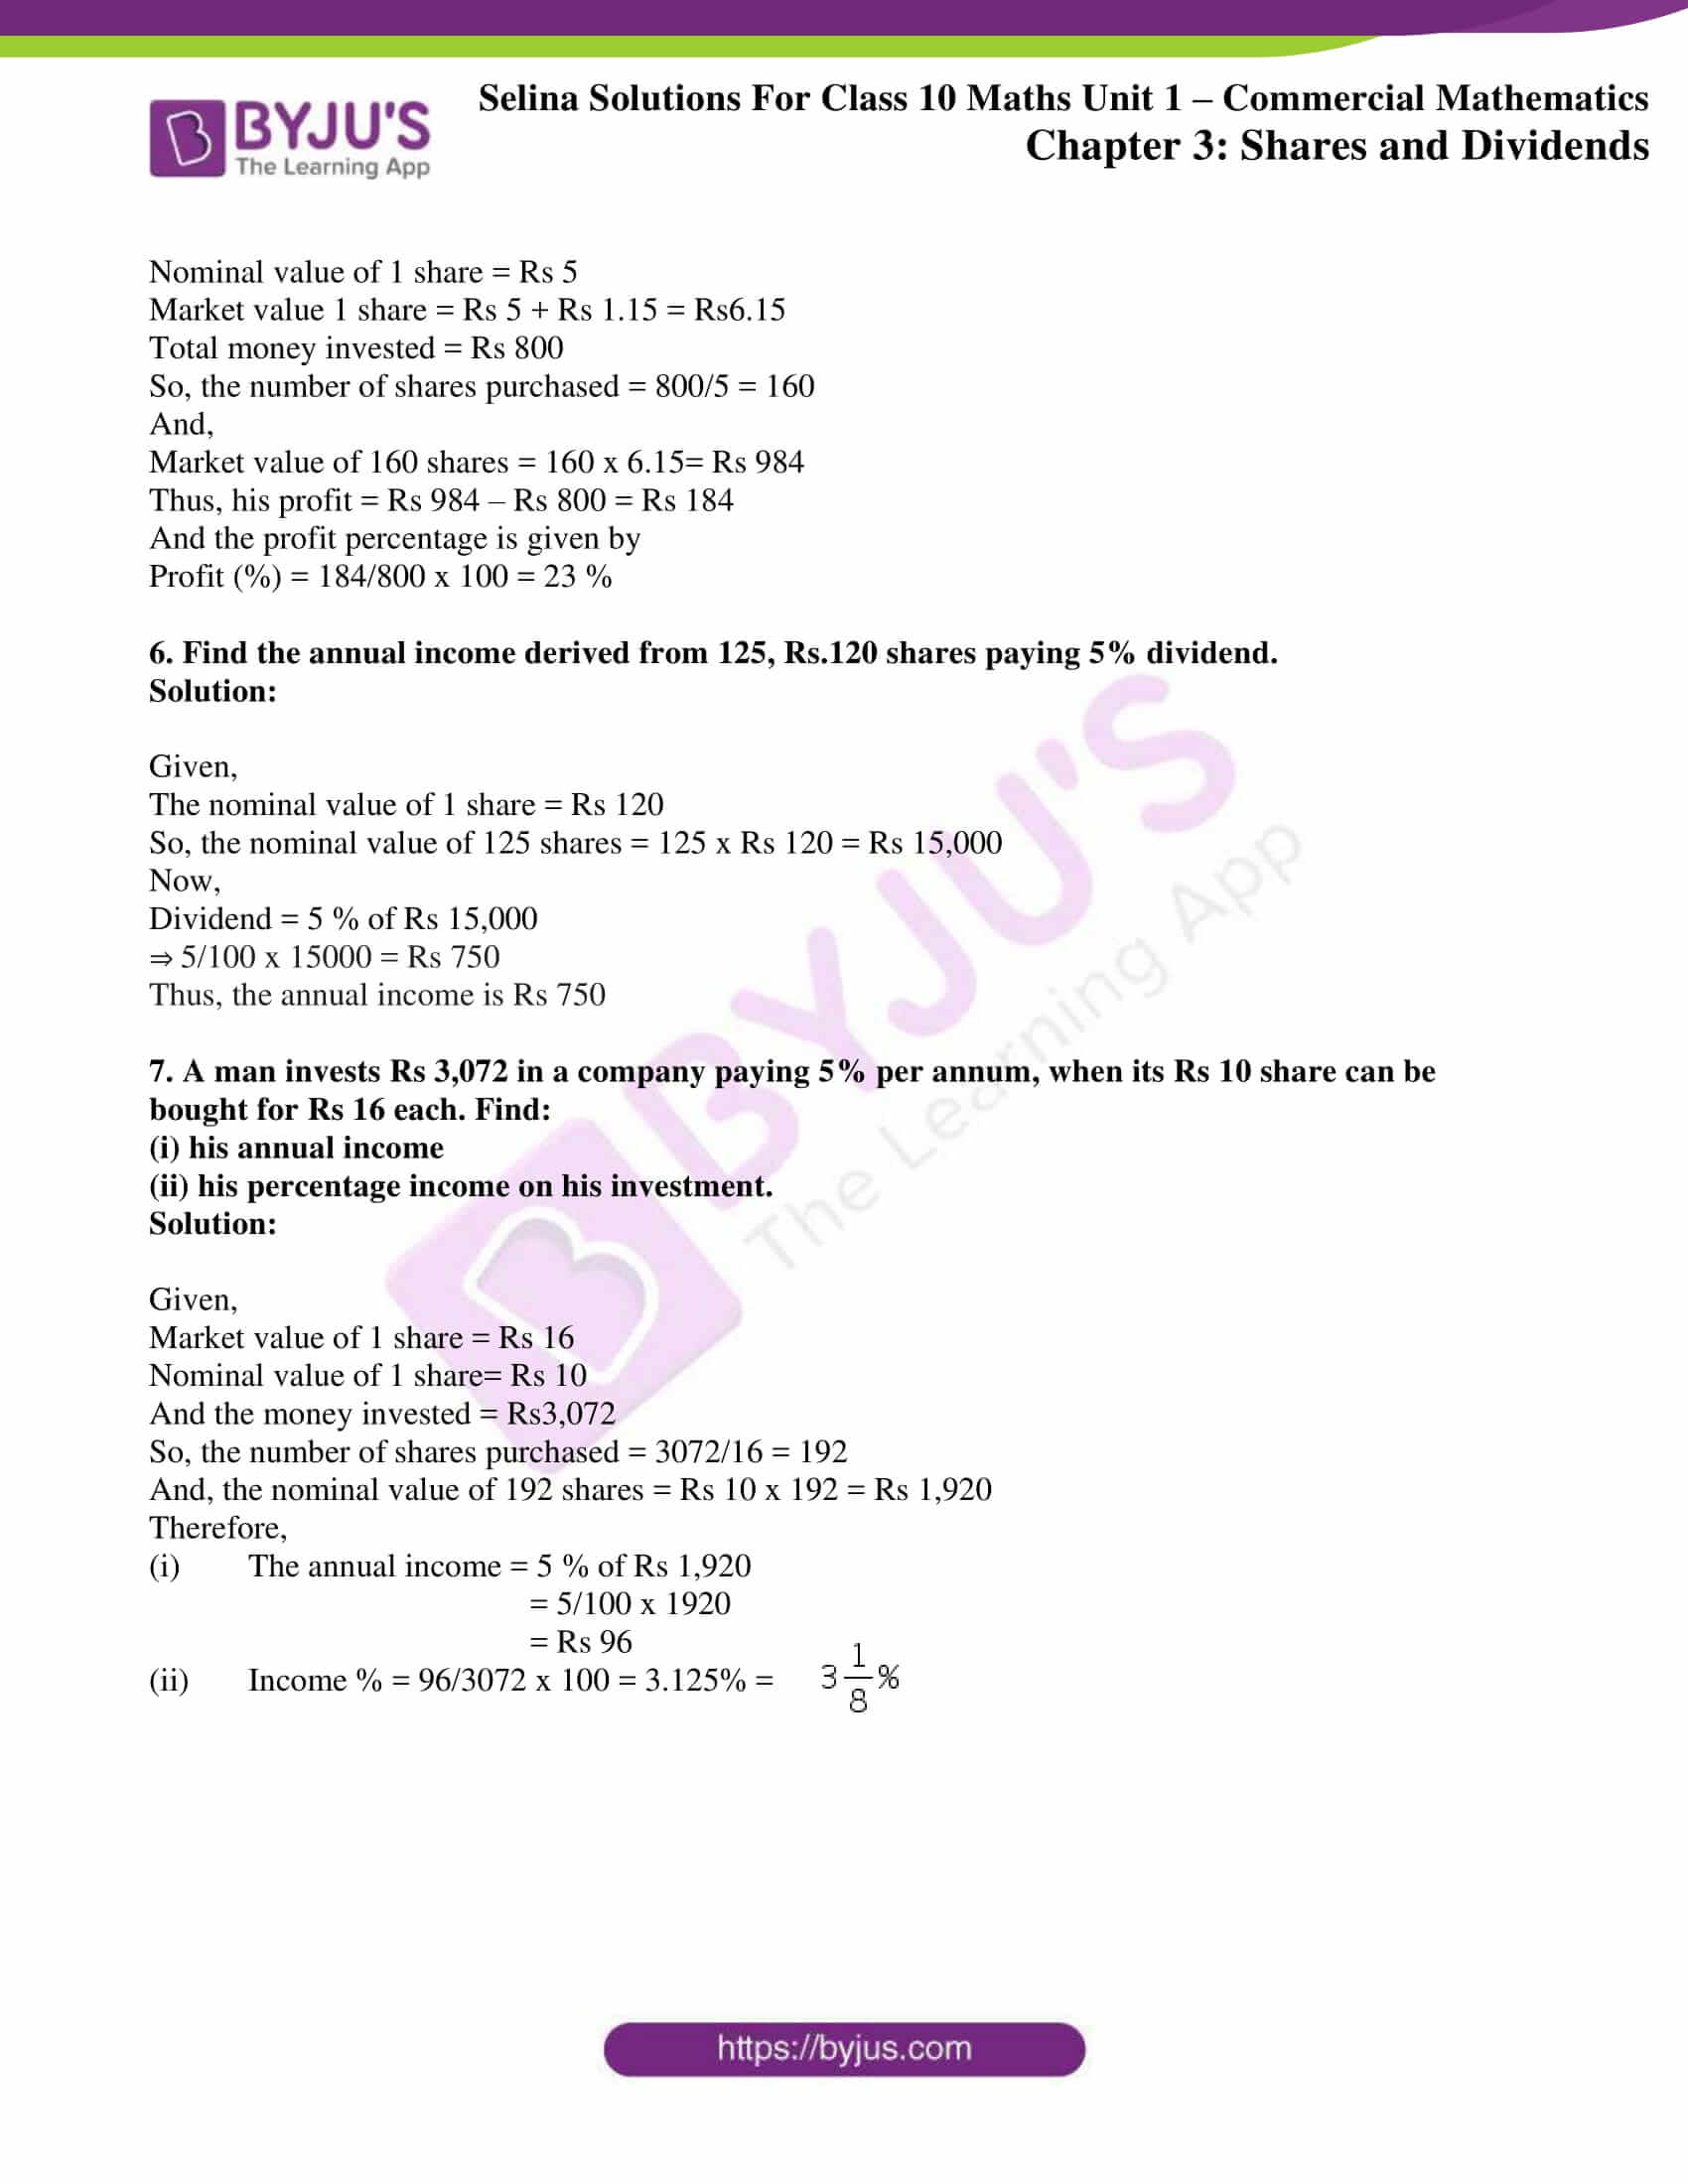 selina solution concise maths class 10 chapter 3a